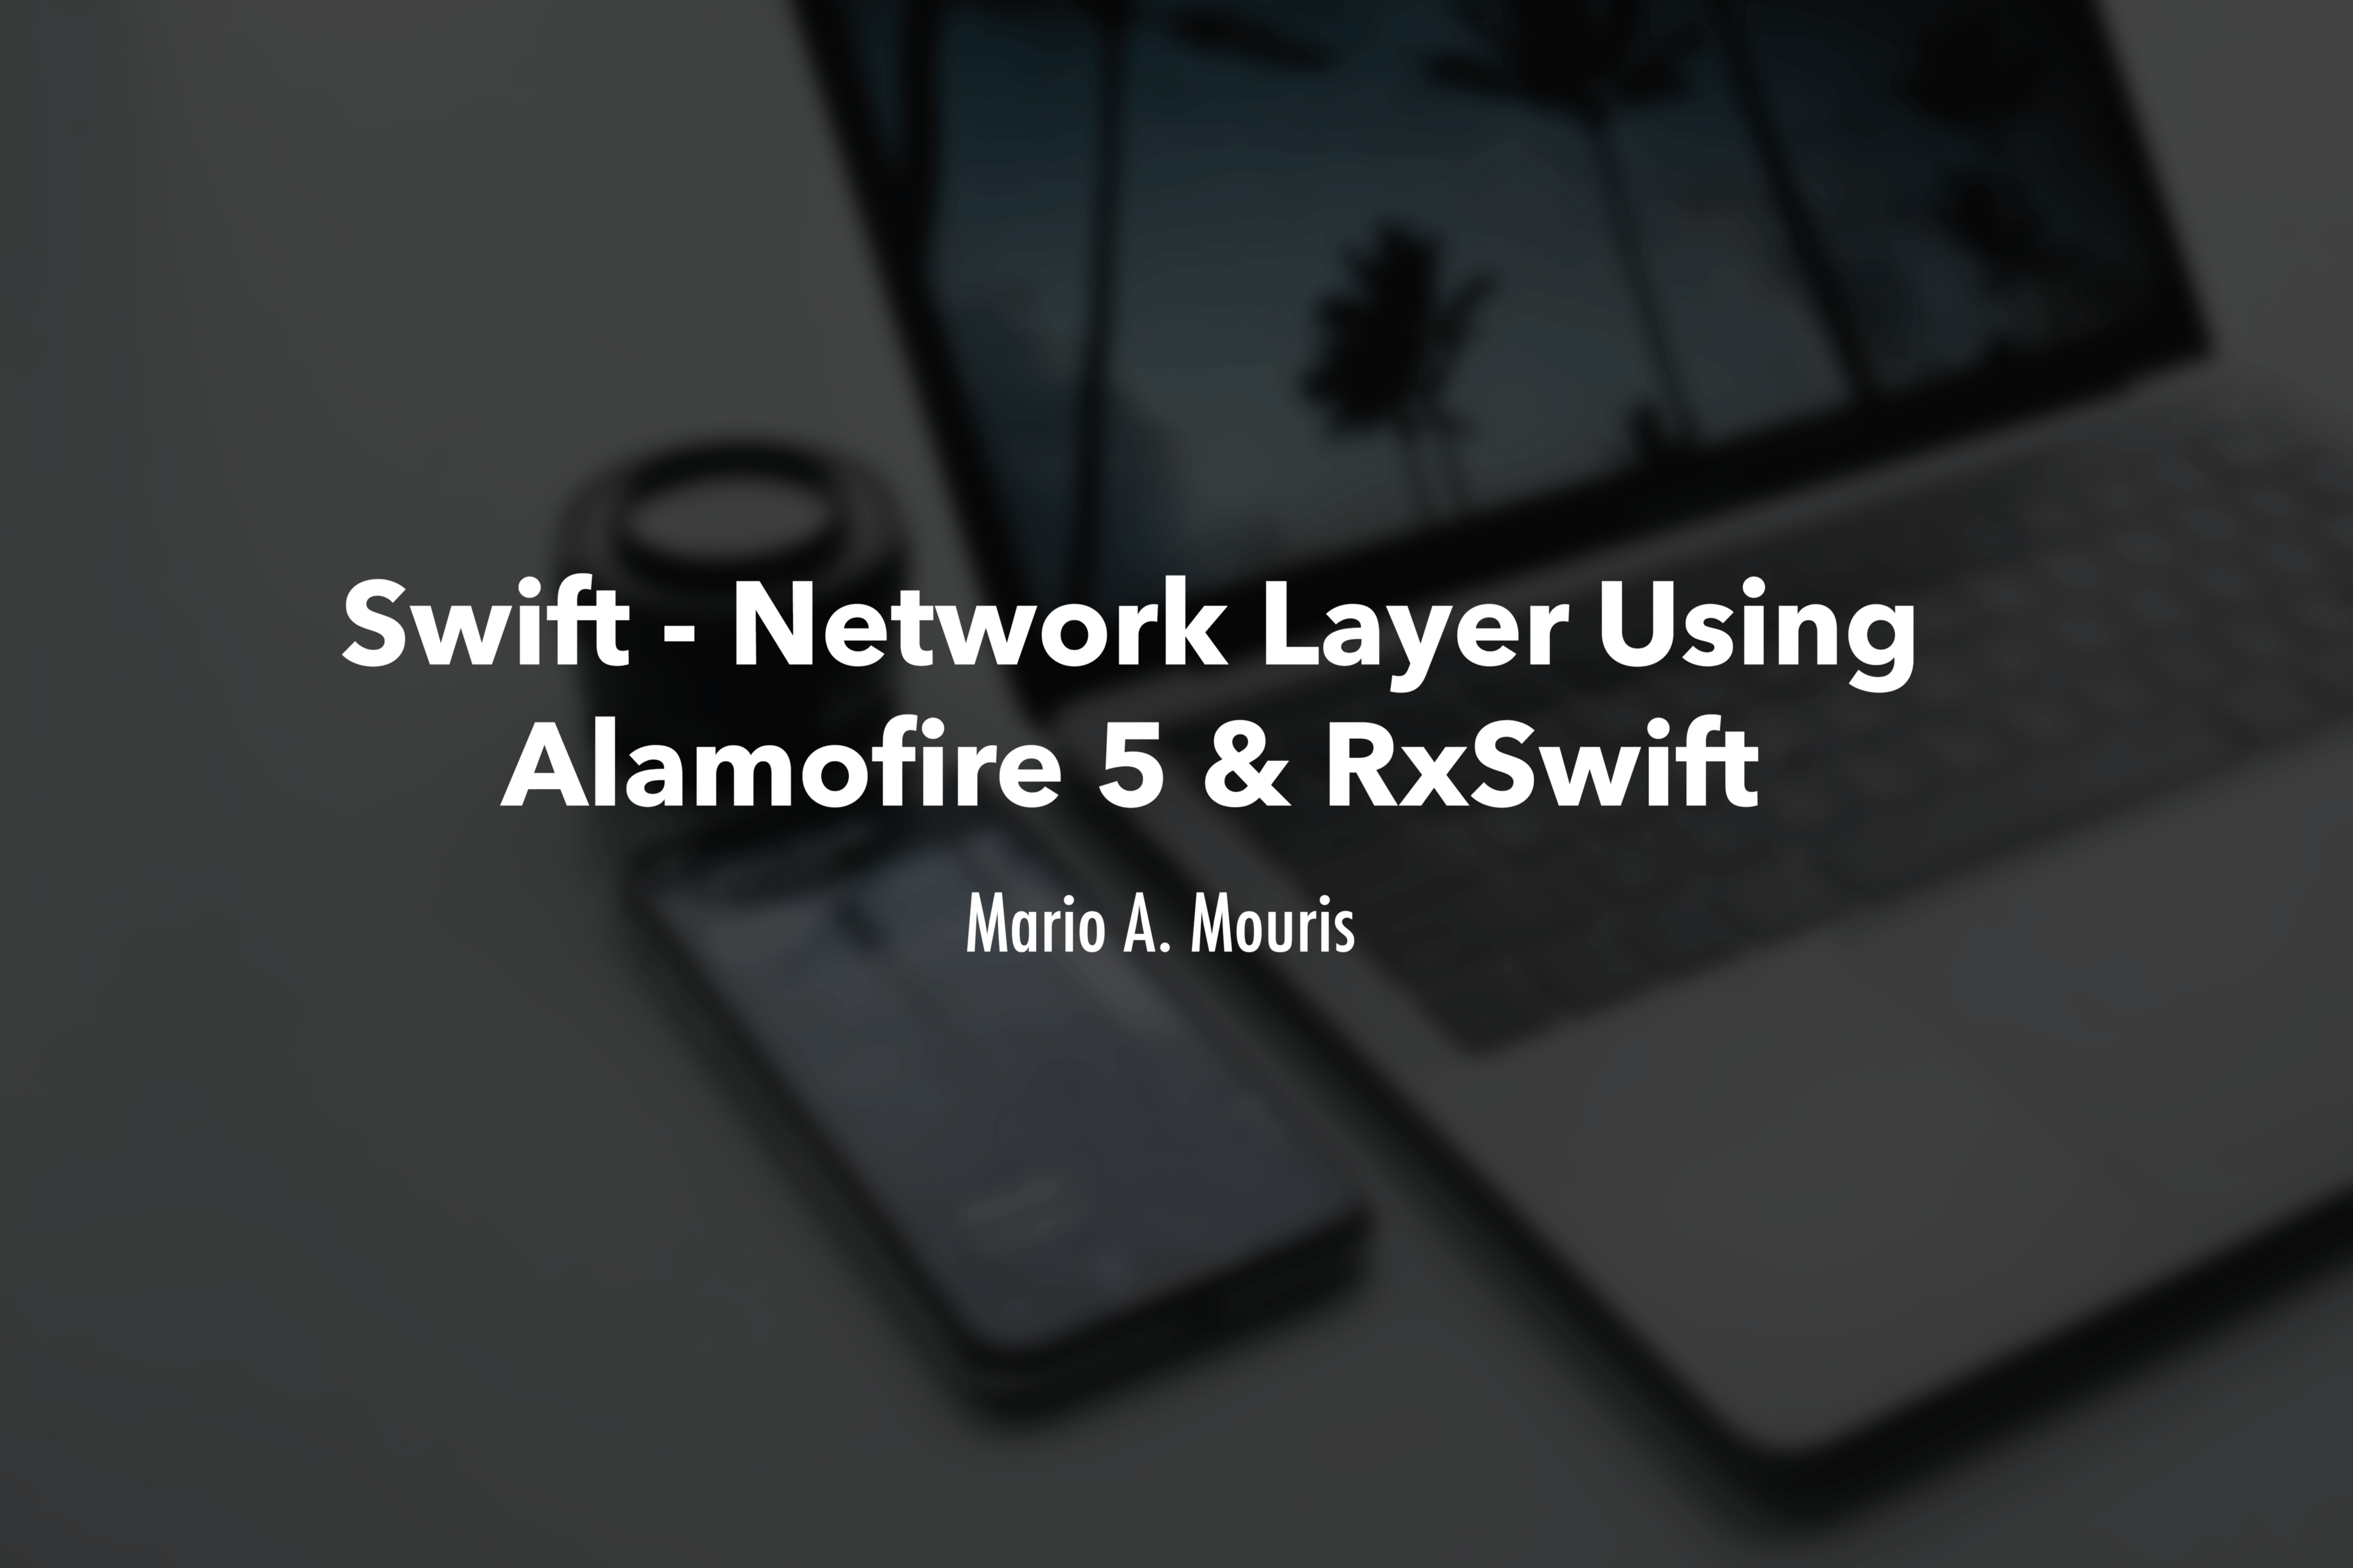 Swift 4 2 — A guide to building a network layer using Alamofire 5